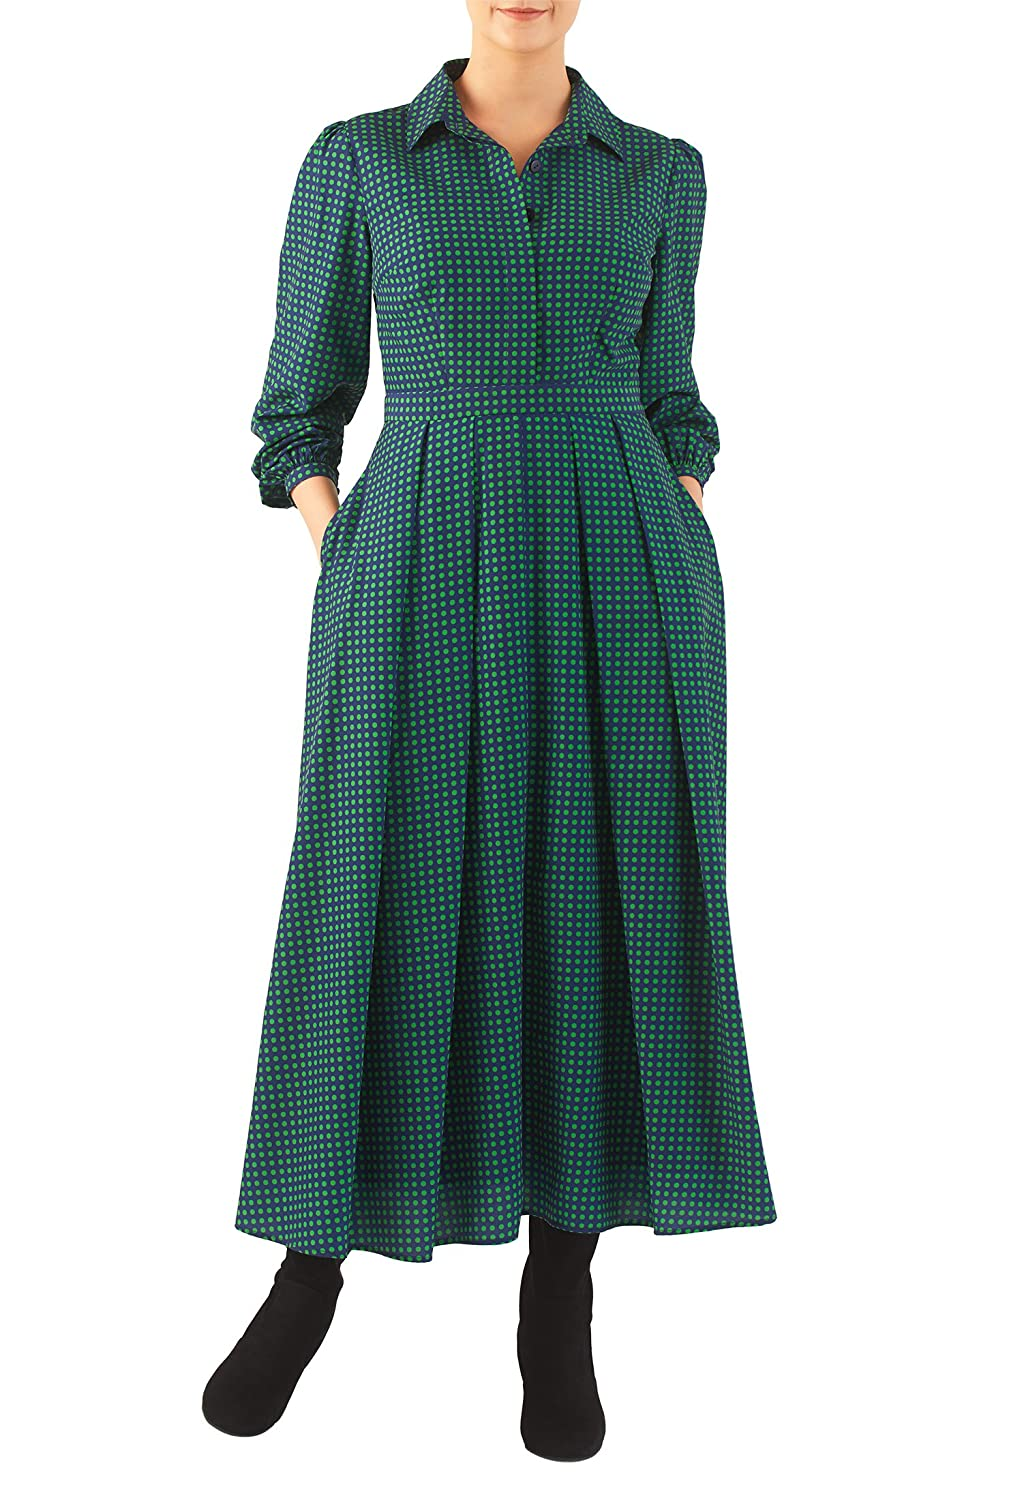 1940s Style Dresses and Clothing eShakti Womens Polka dot print crepe midi shirtdress $74.95 AT vintagedancer.com